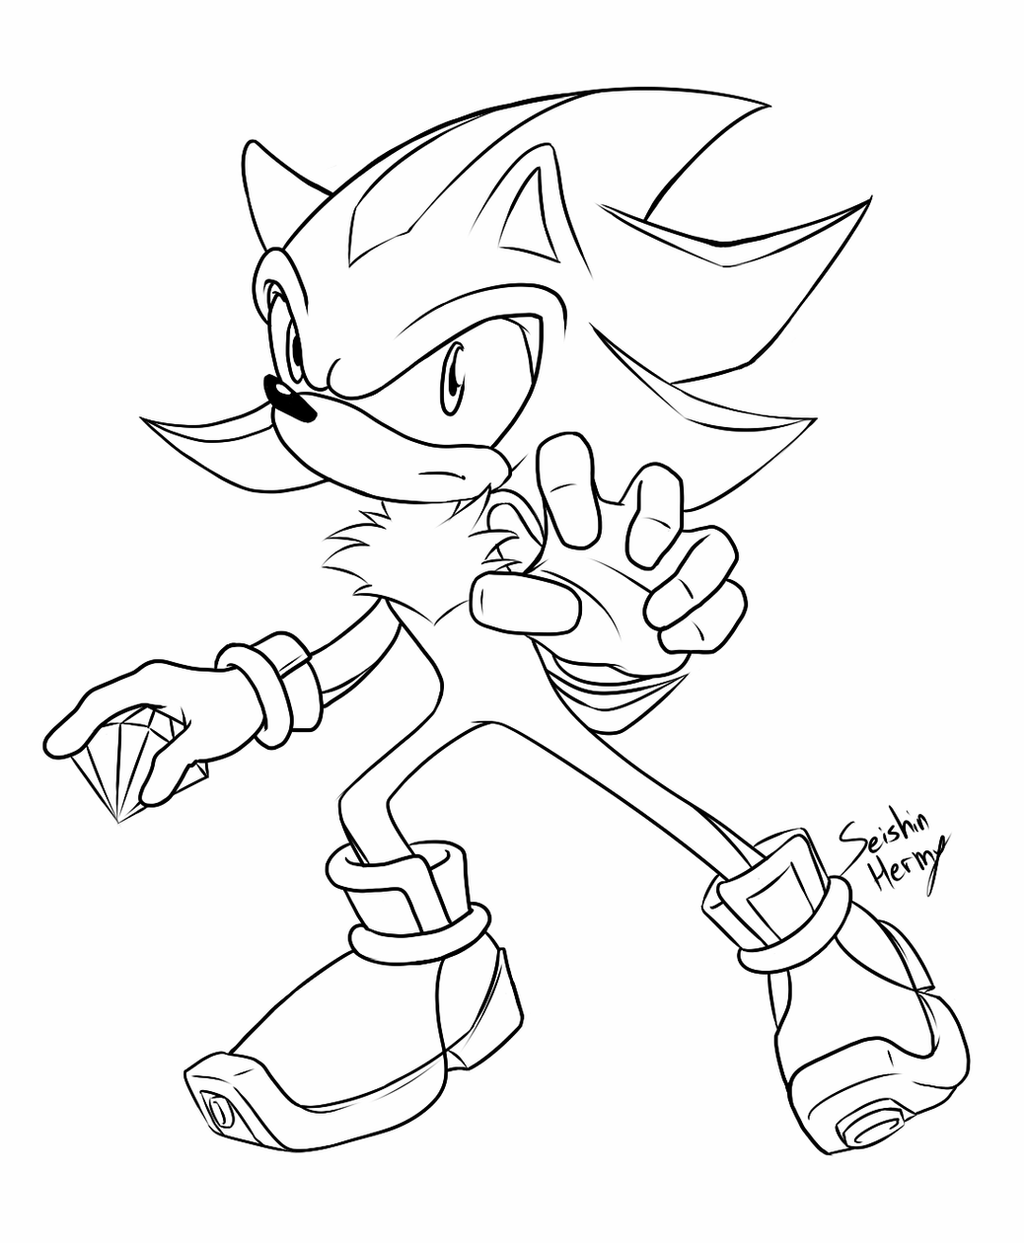 scourge the hedgehog coloring pages scourage free coloring pages coloring the hedgehog pages scourge